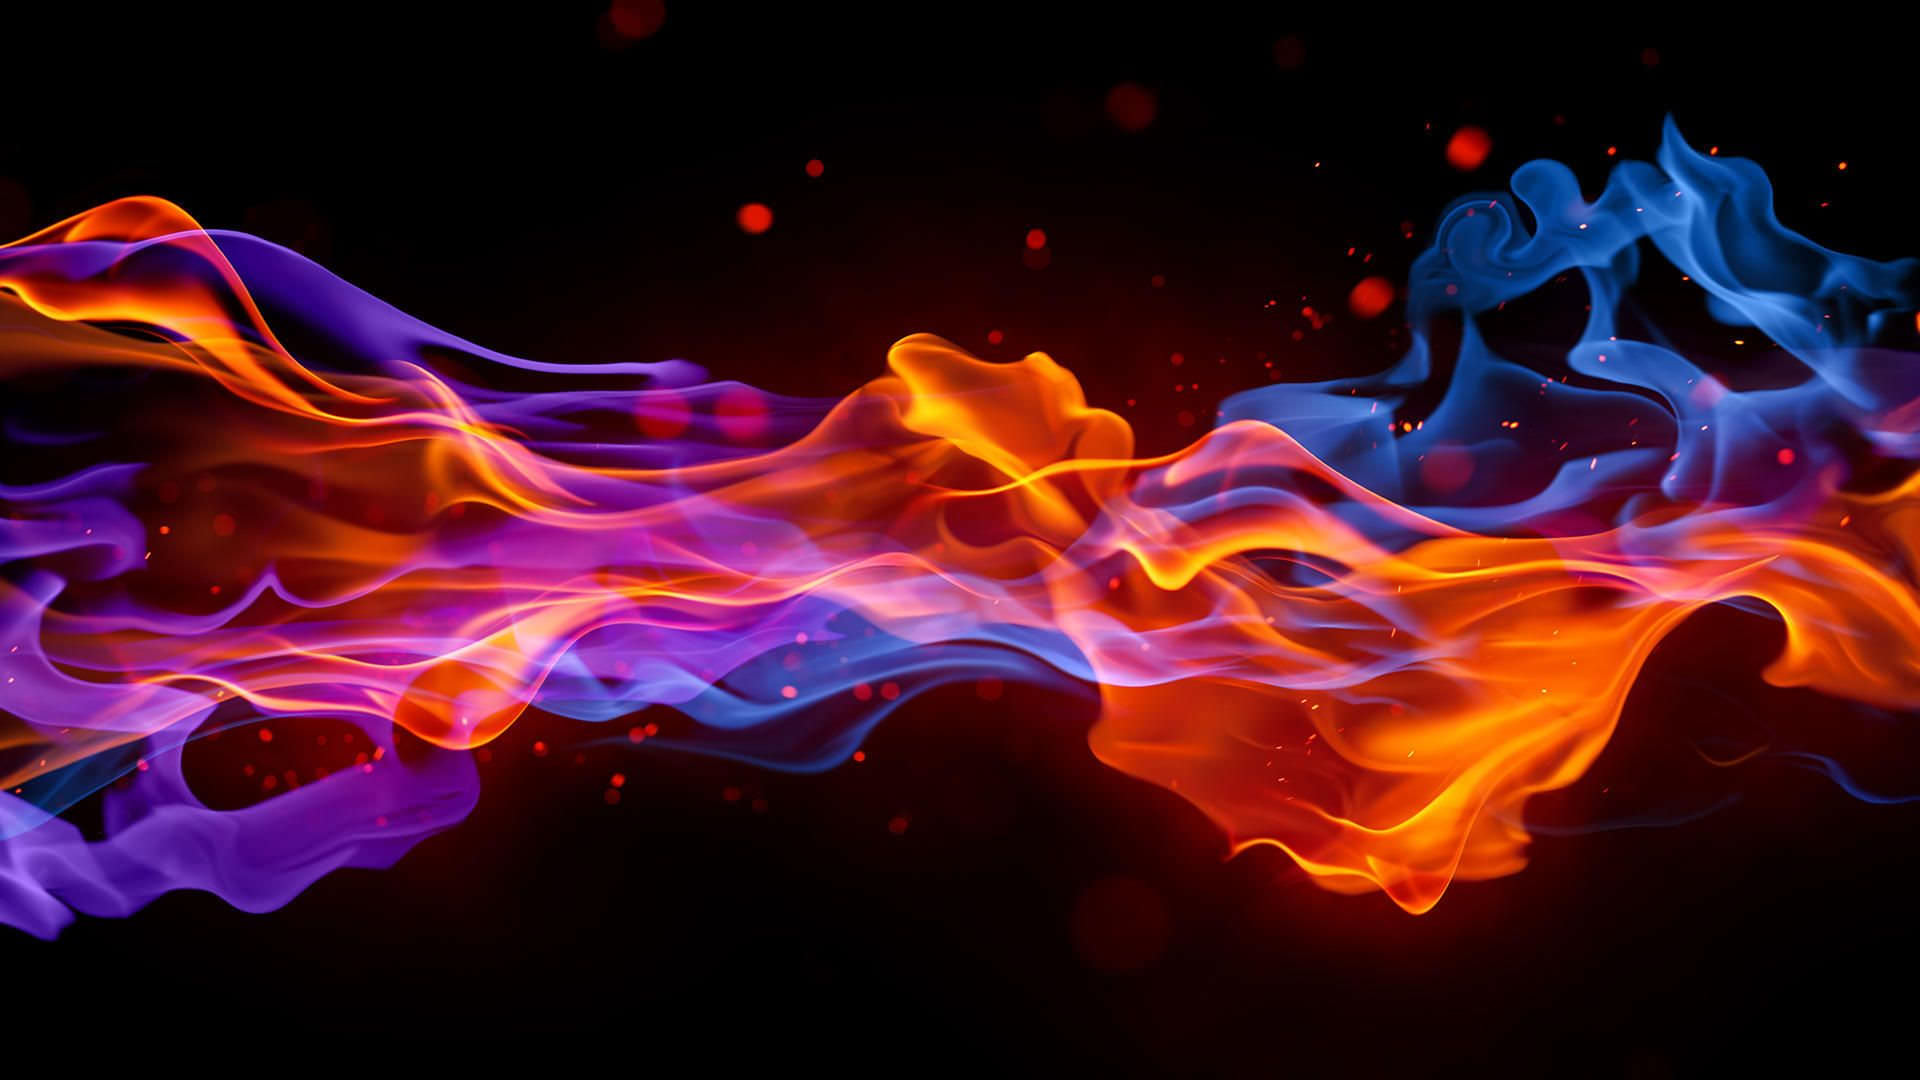 Fire Abstract Website Background